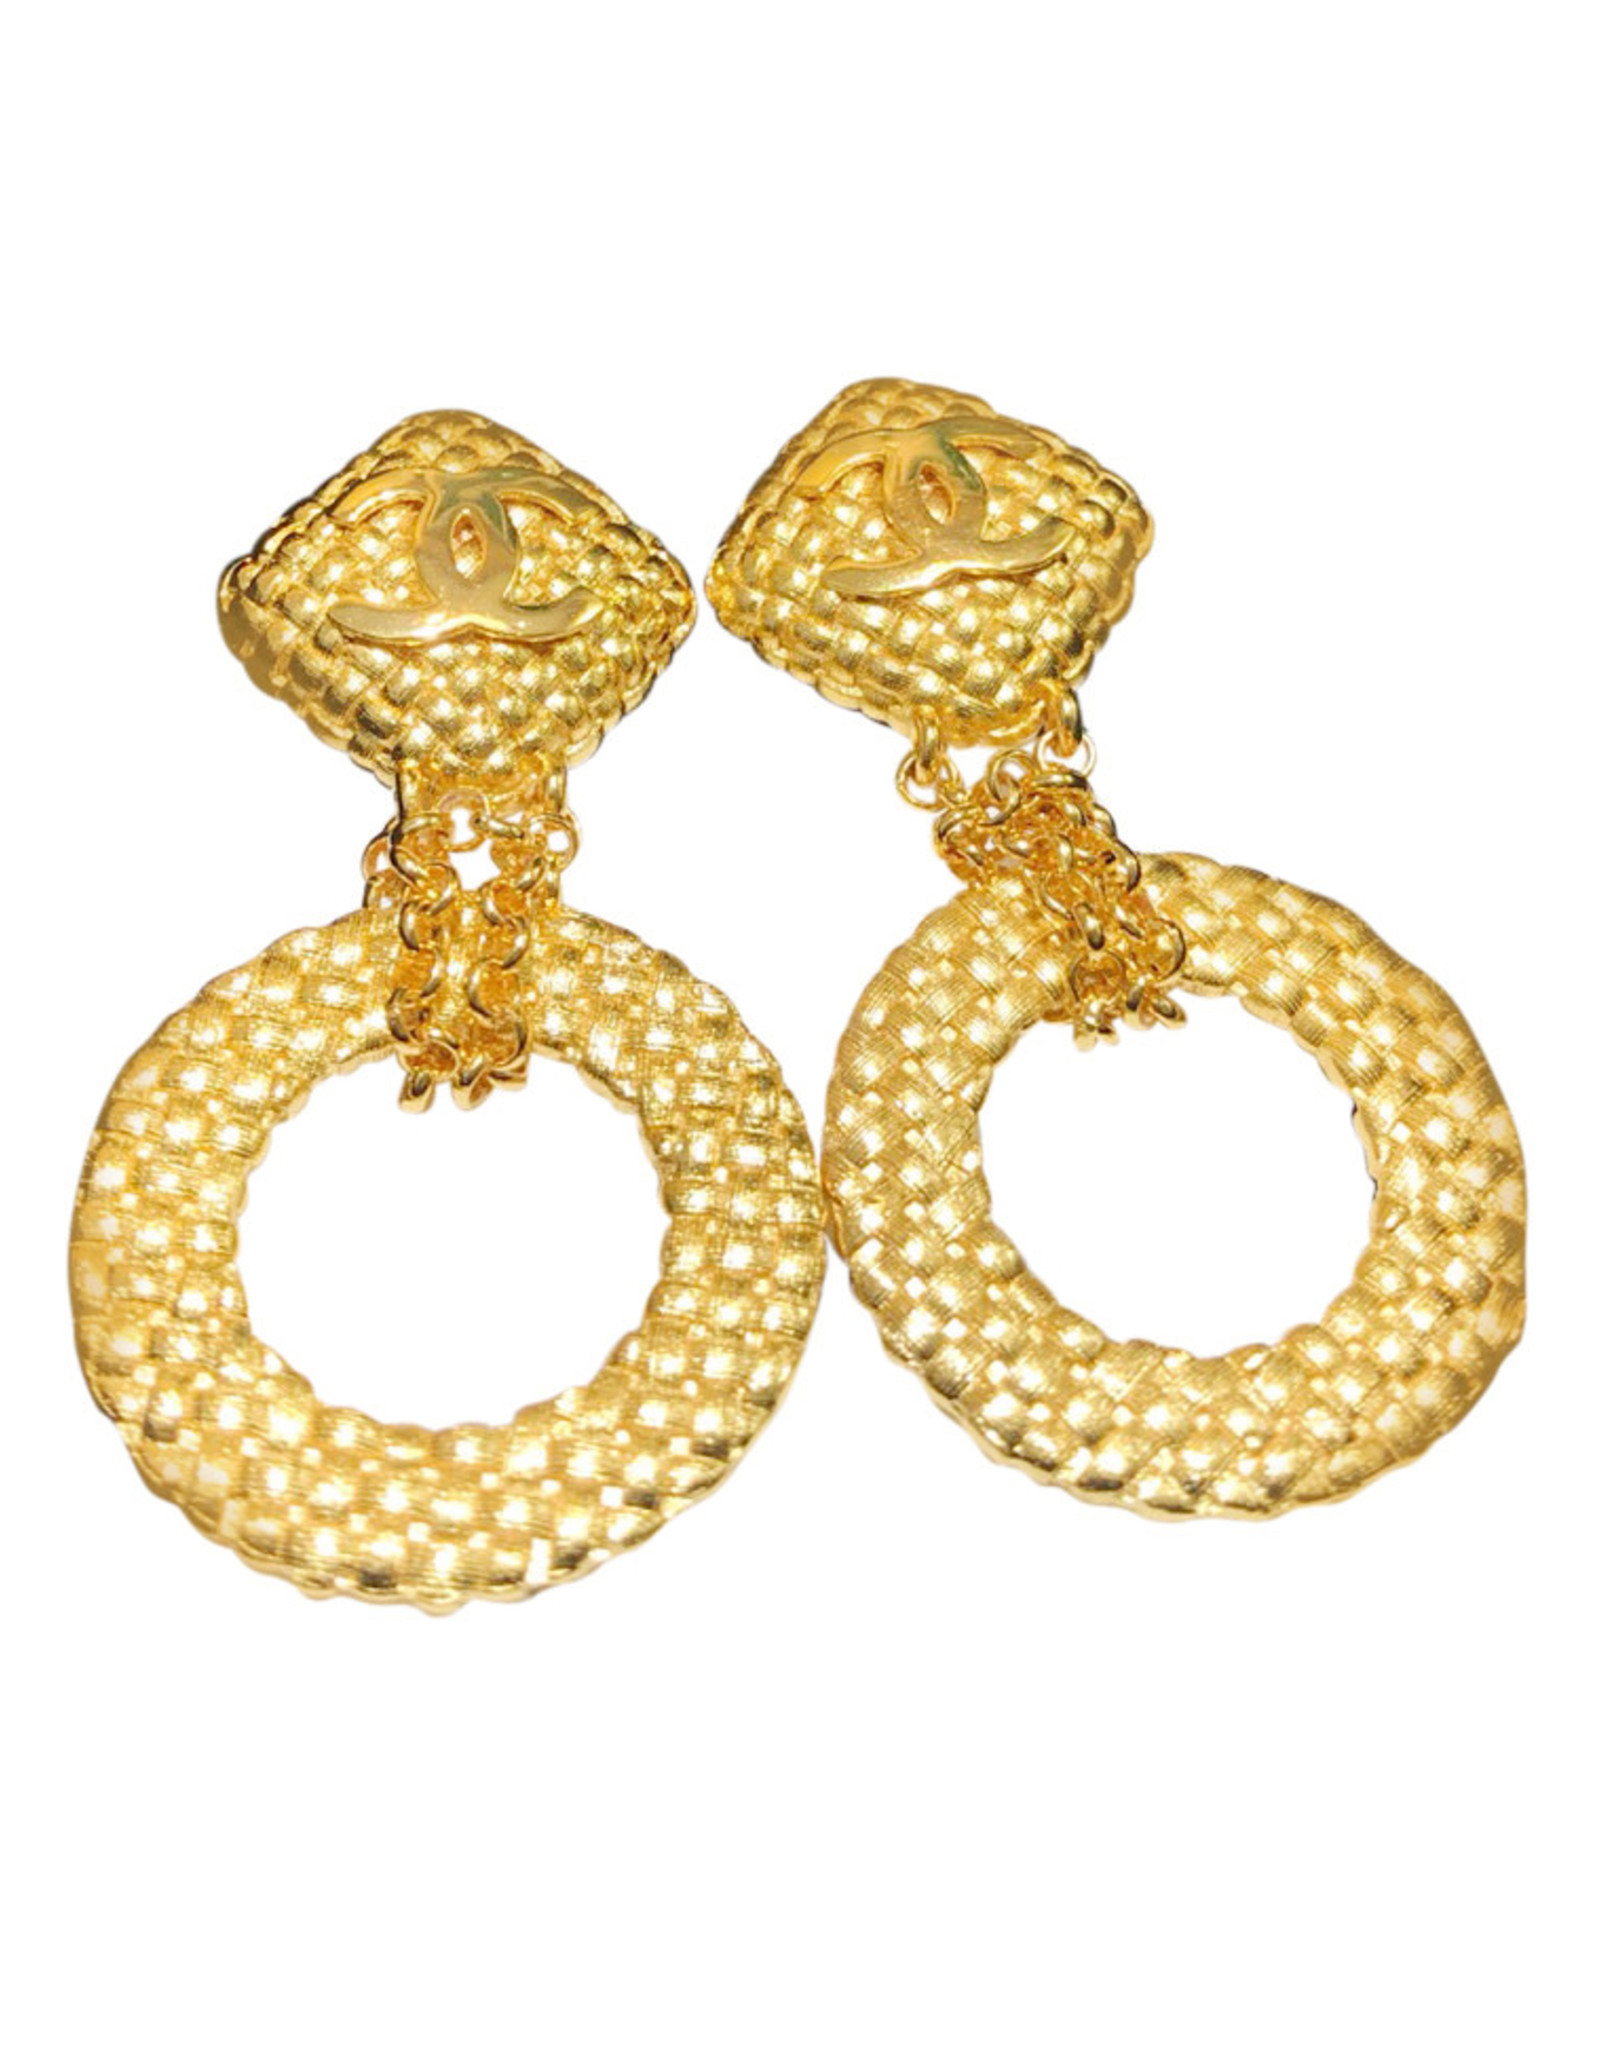 Chanel Chanel Quilted Hoop and Chain Earrings (1992 Vintage)